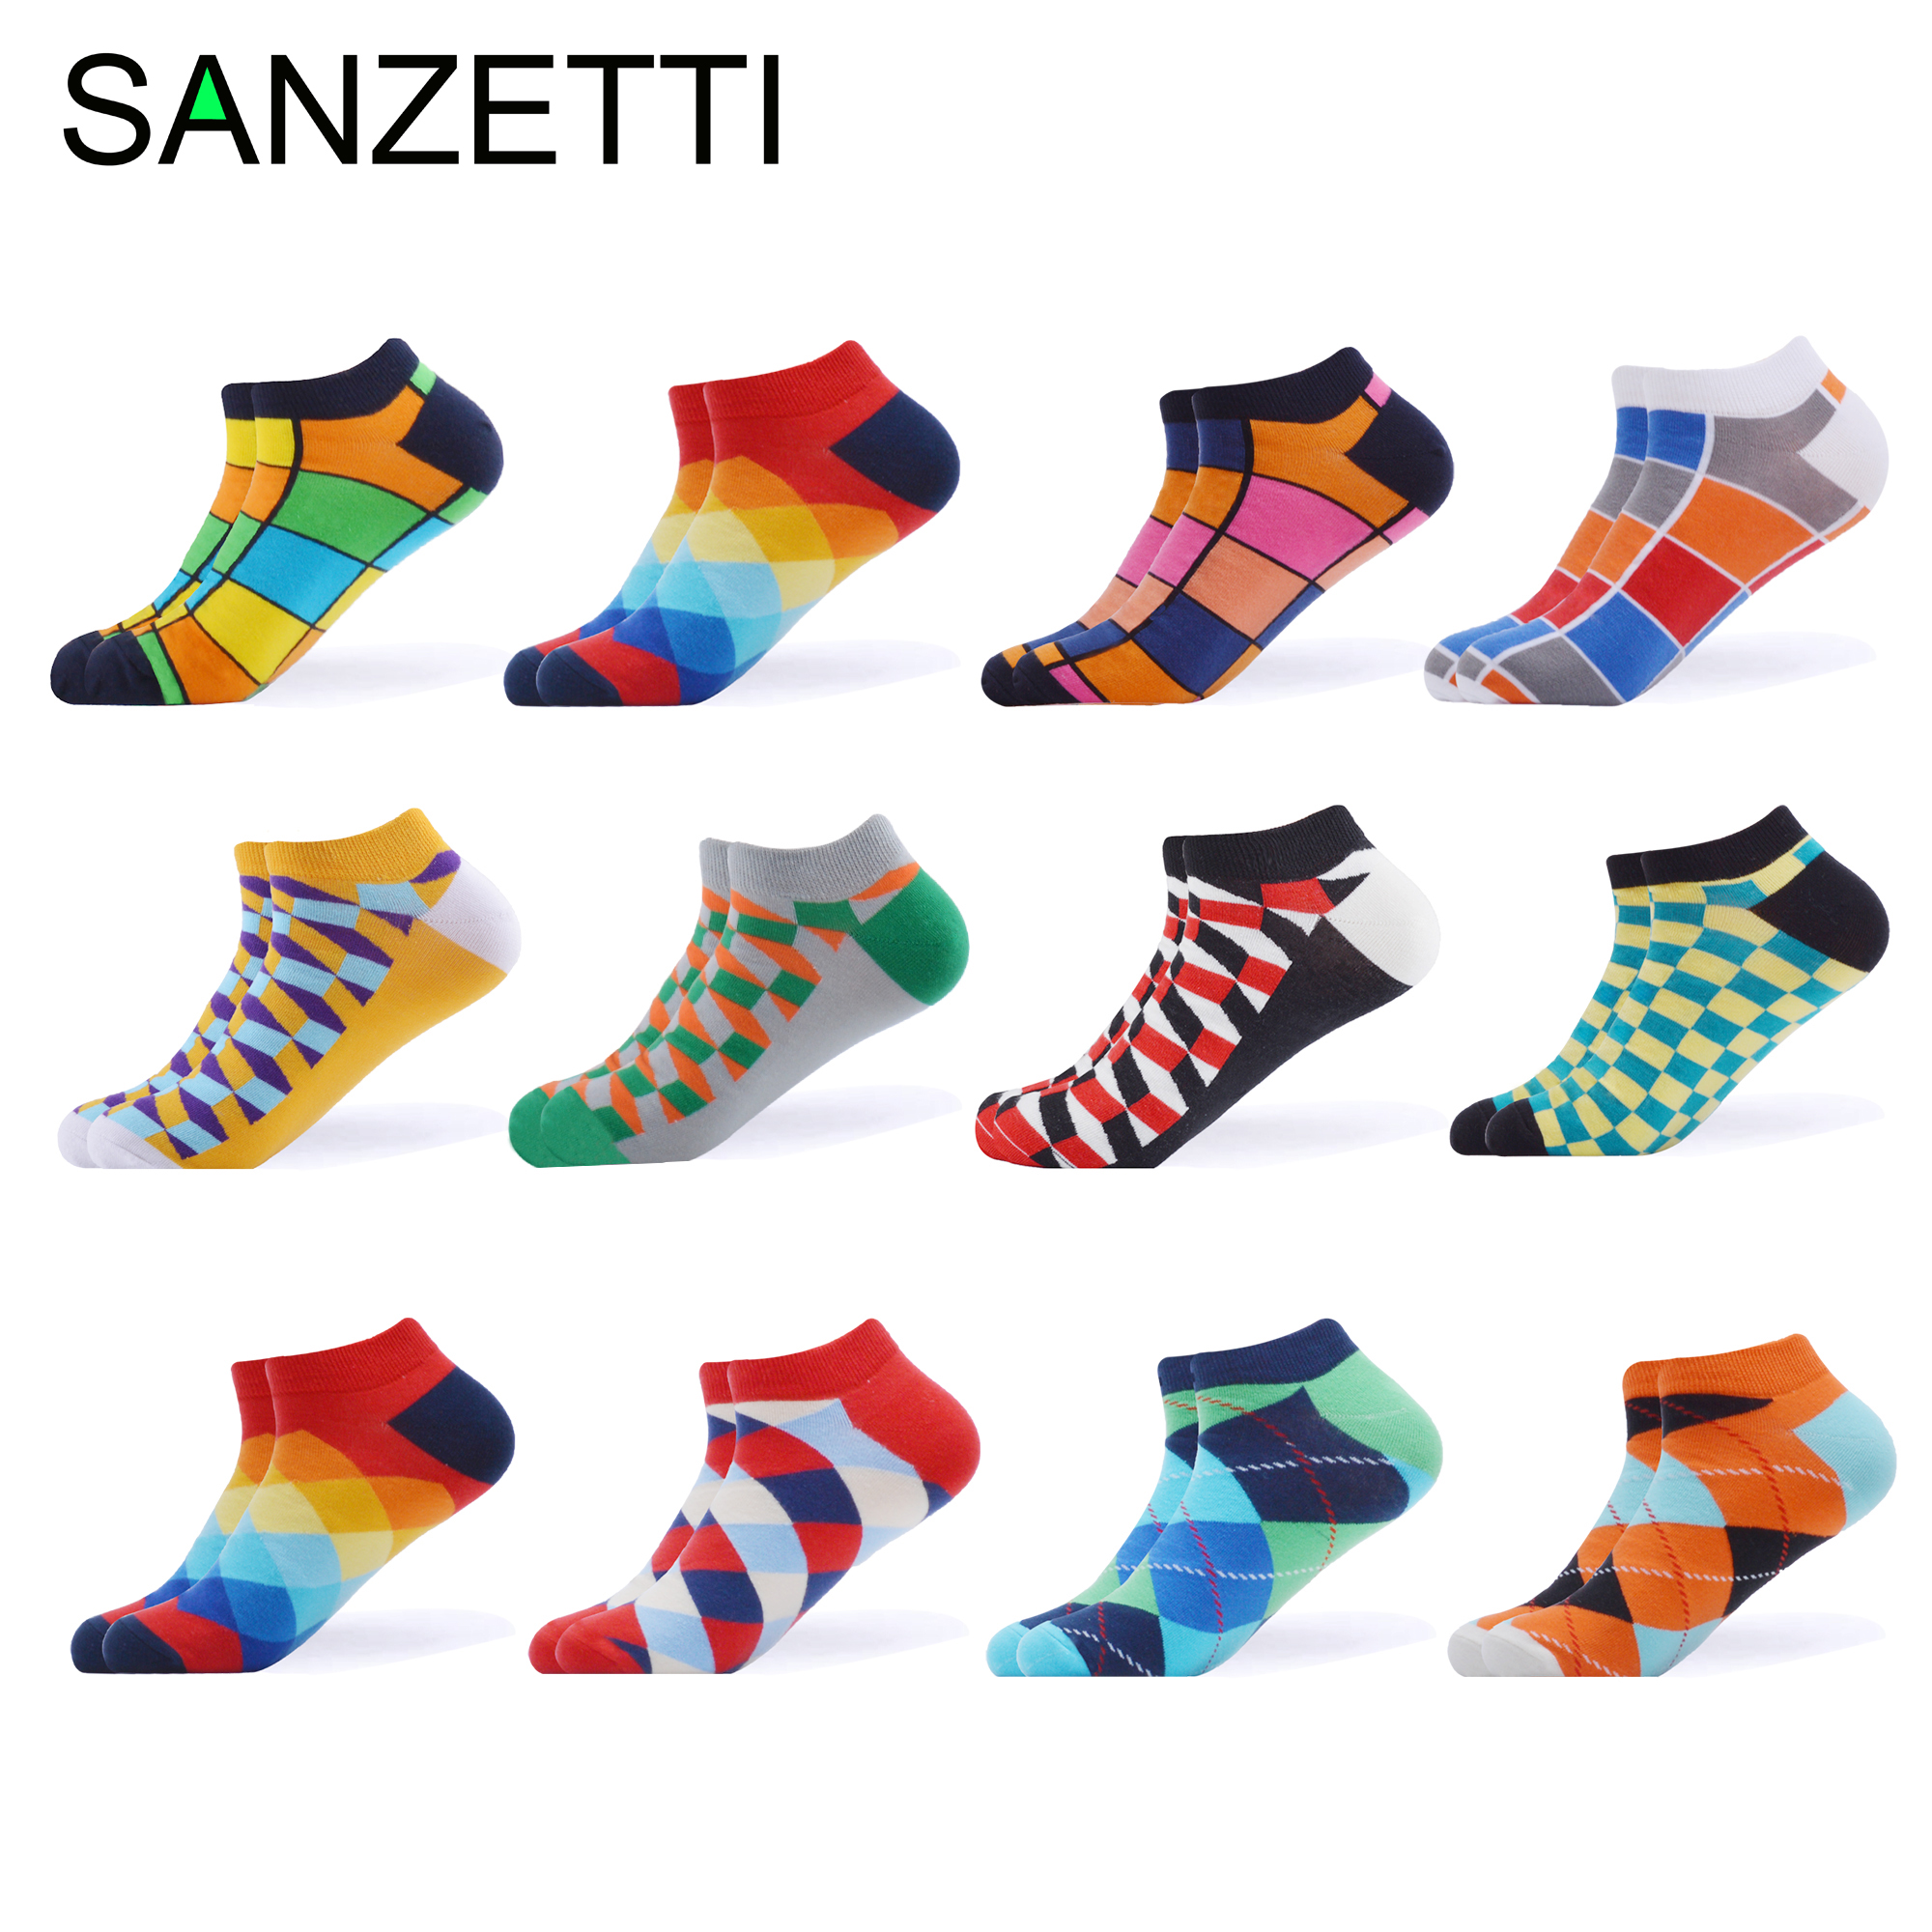 SANZETTI 12 Pairs/Lot Men's Casual Novelty Colorful Summer Ankle   Socks   Combed Cotton Short   Socks   Plaid Dress Boat Design   Socks